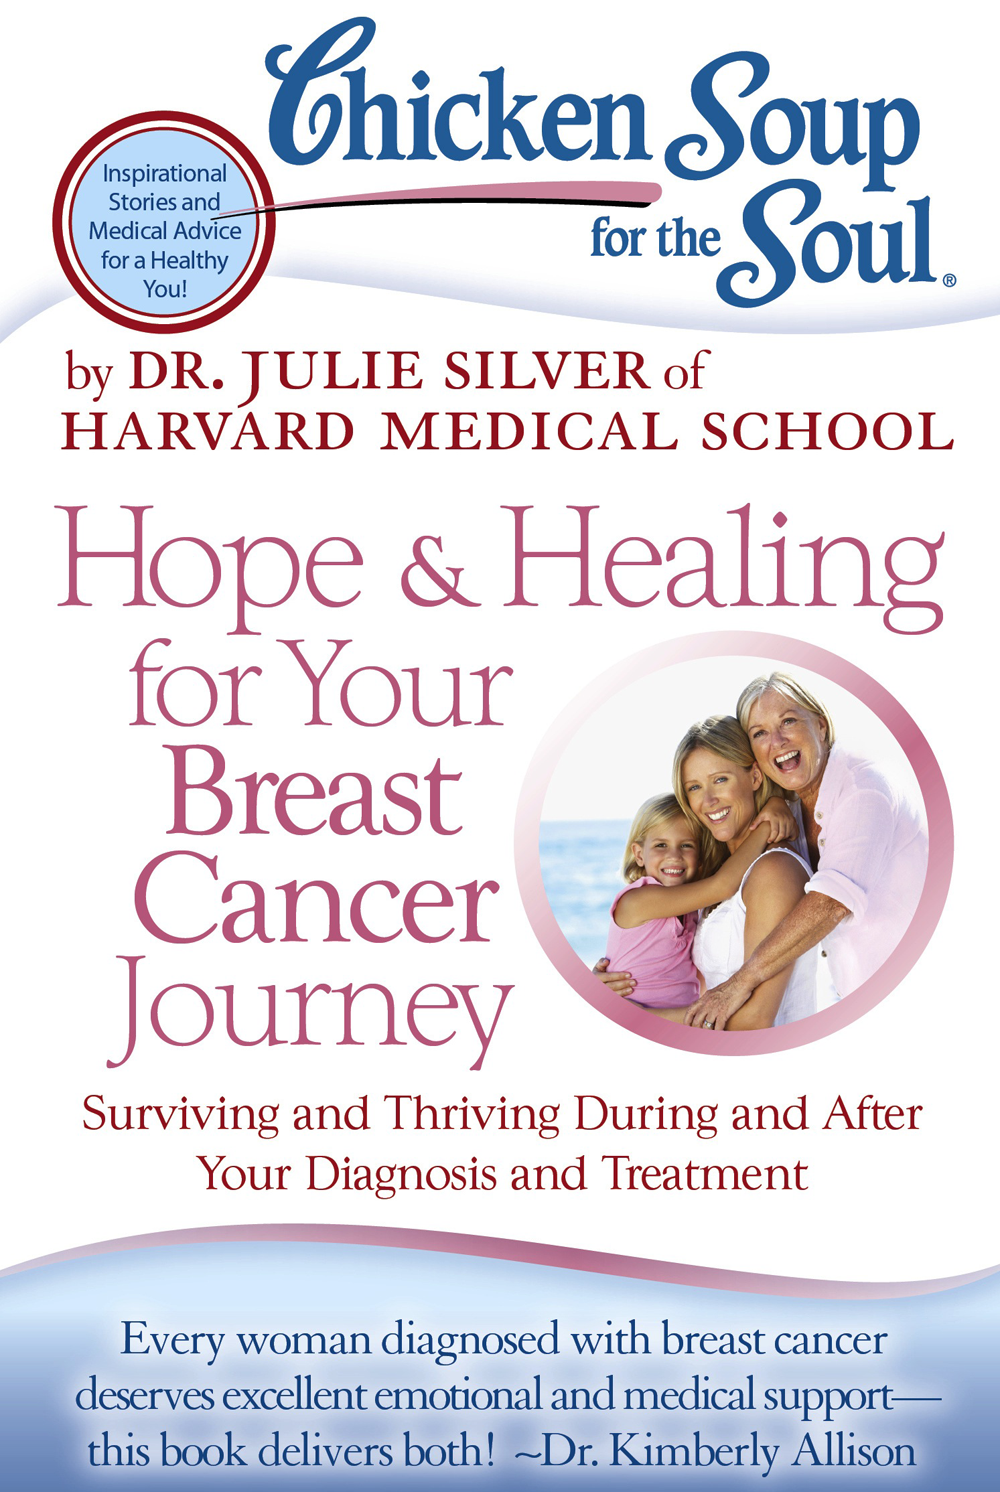 Chicken Soup For the Soul -Hope & Healing For Your Breast Cancer Journey Book Cover